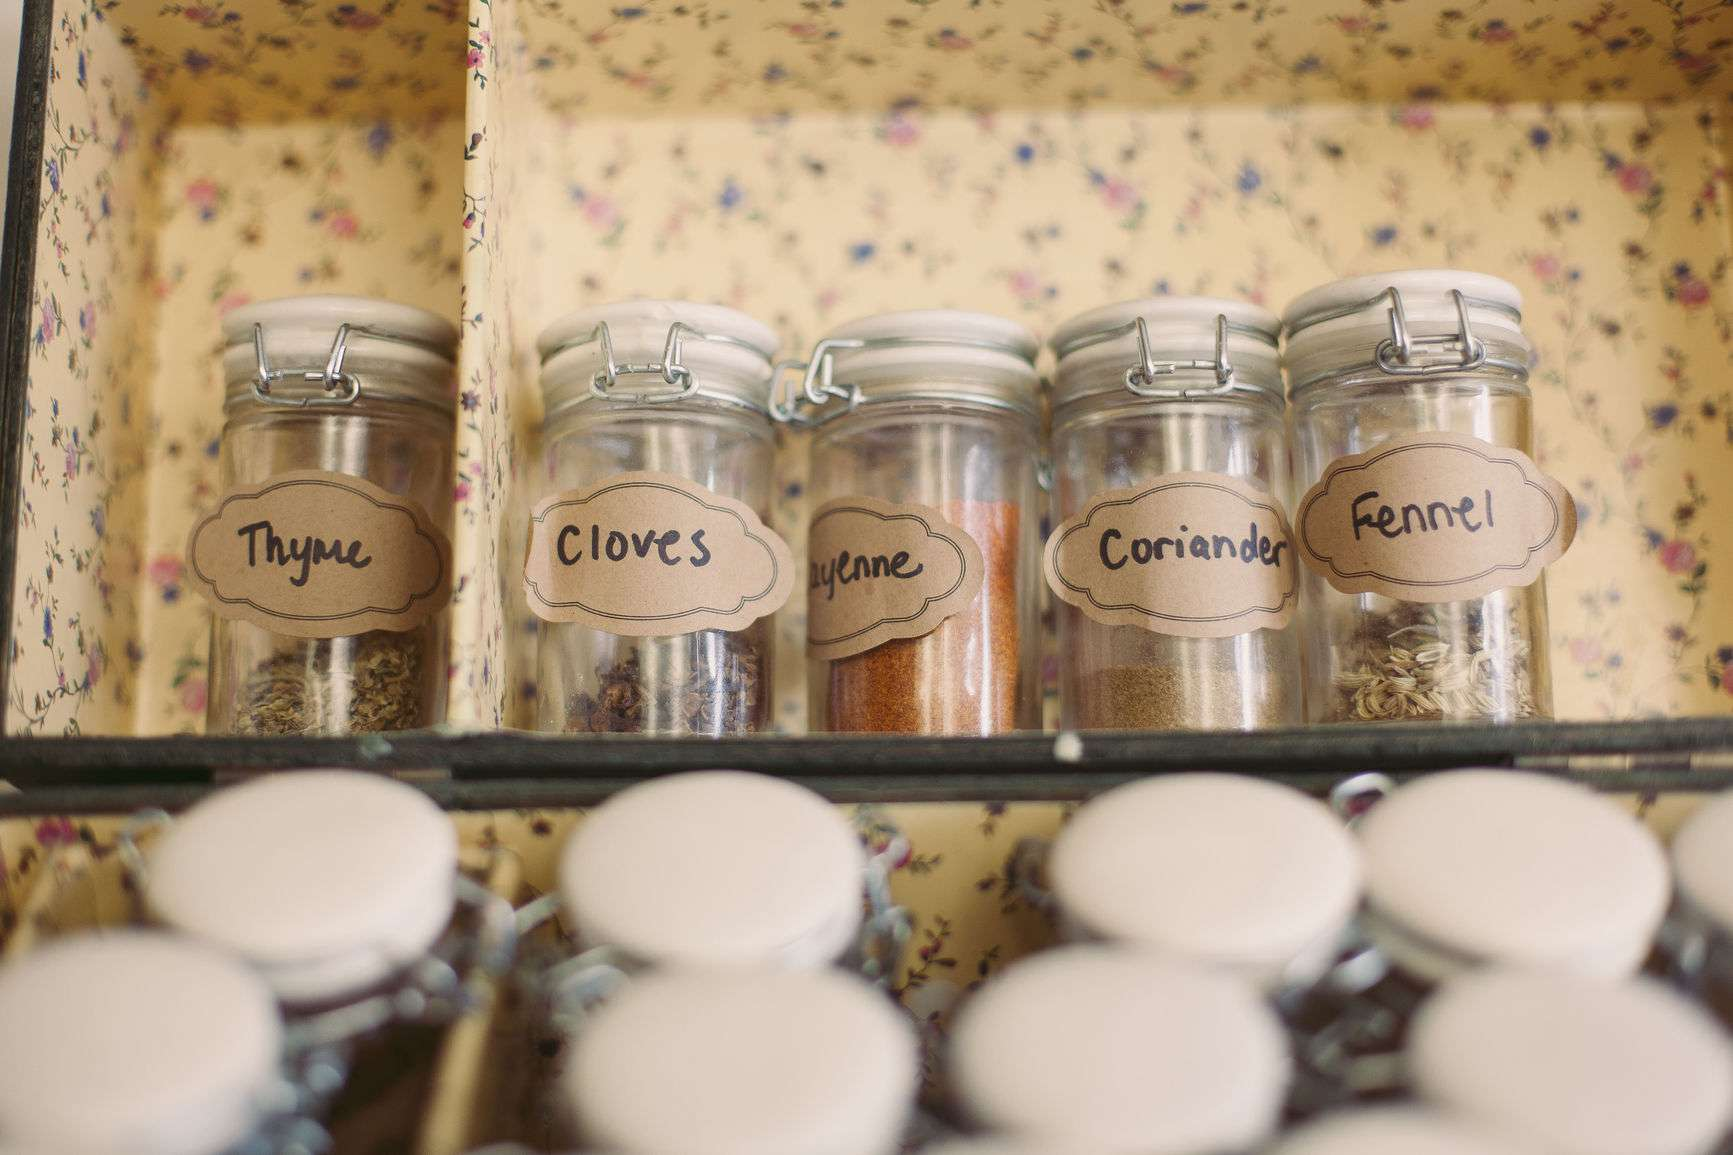 a selection of herb and spice jars